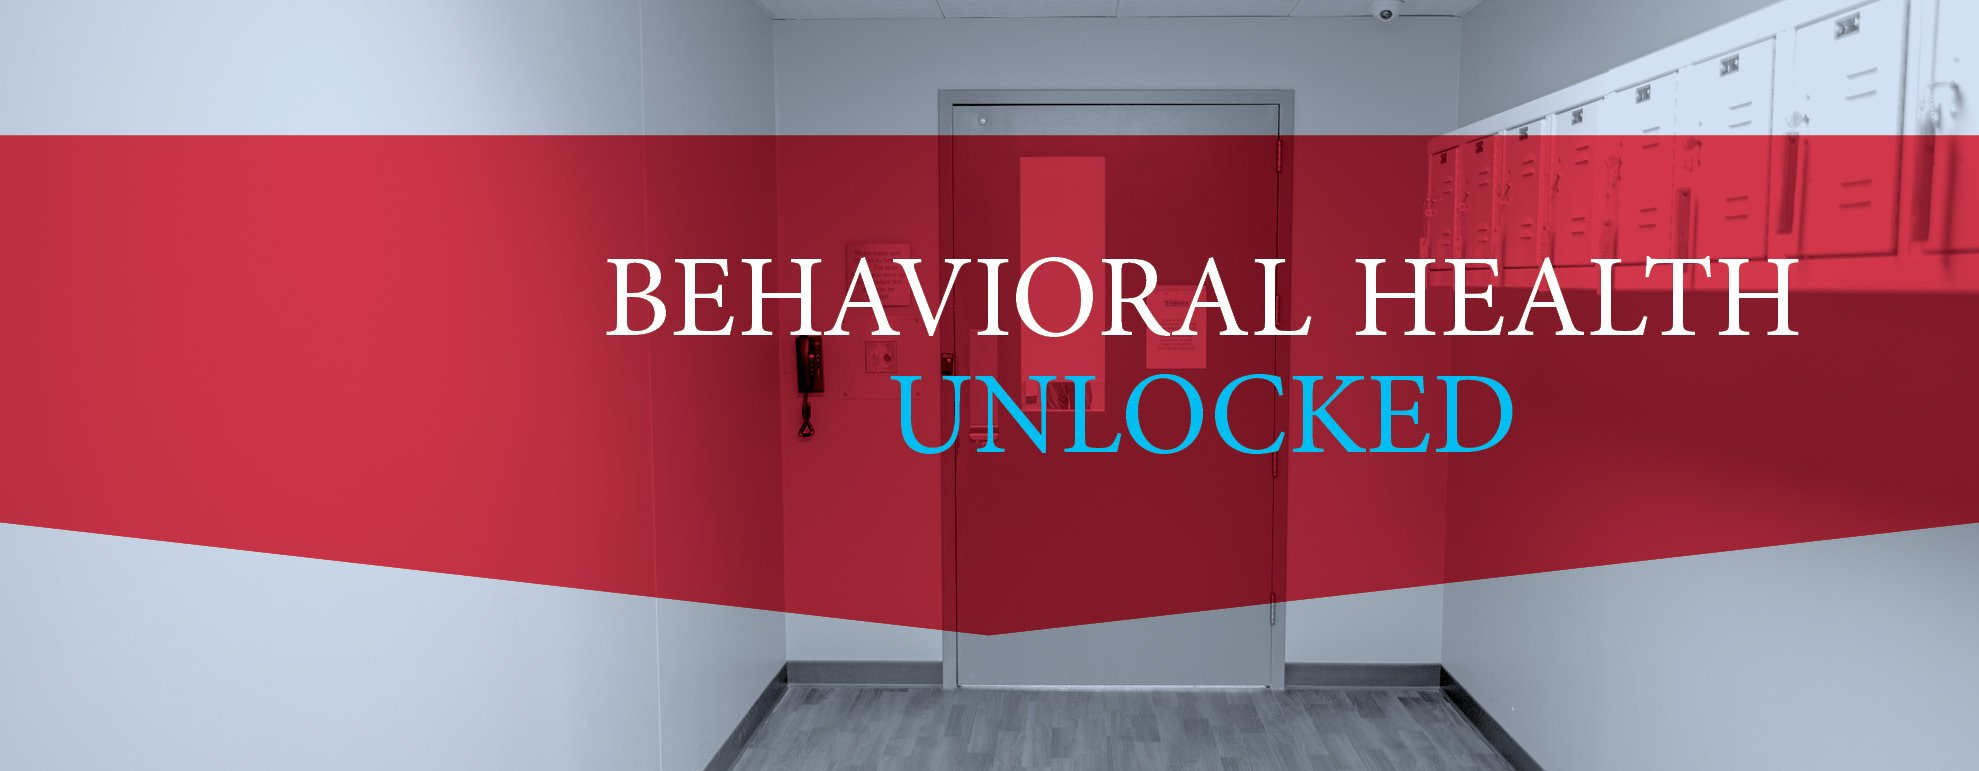 Behavioral Health Unlocked | Health Connect Fall 2018